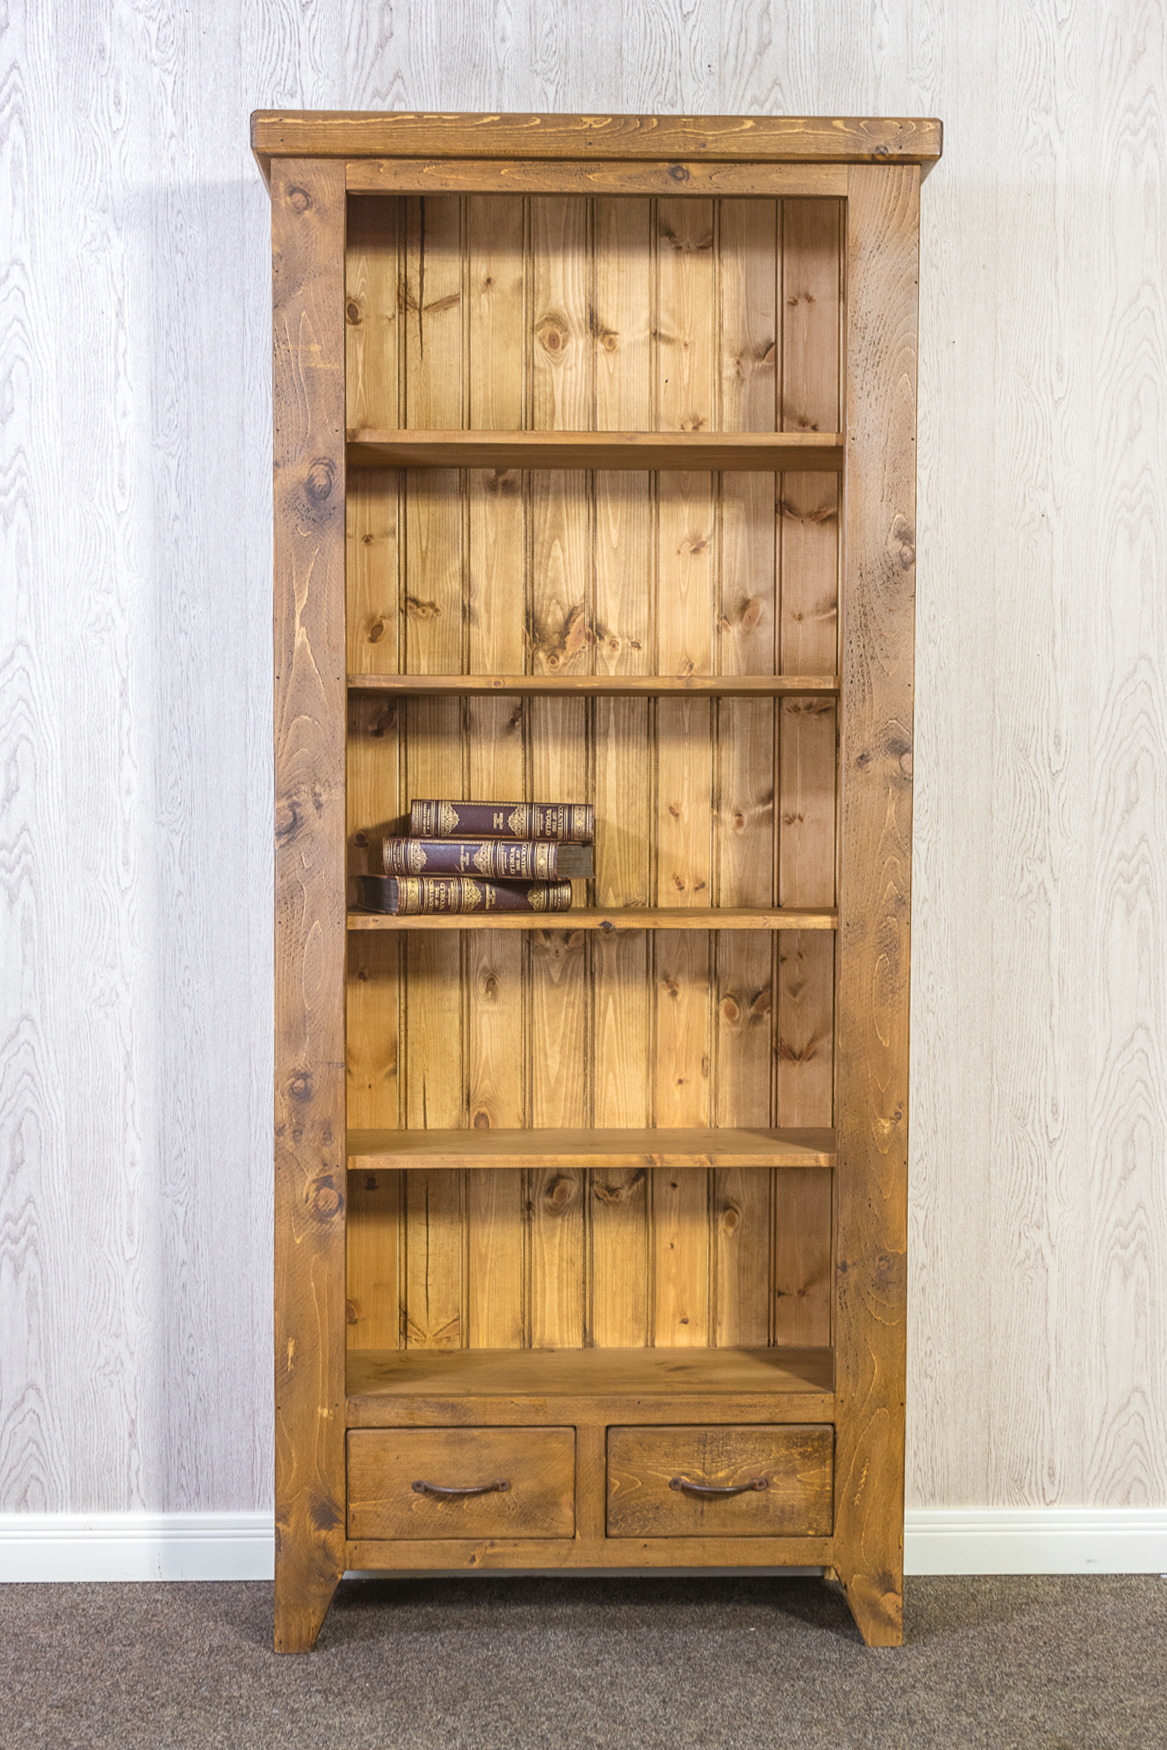 RUSTIC Tall Open Bookcase with 2 Drawers - 1000mm Wide